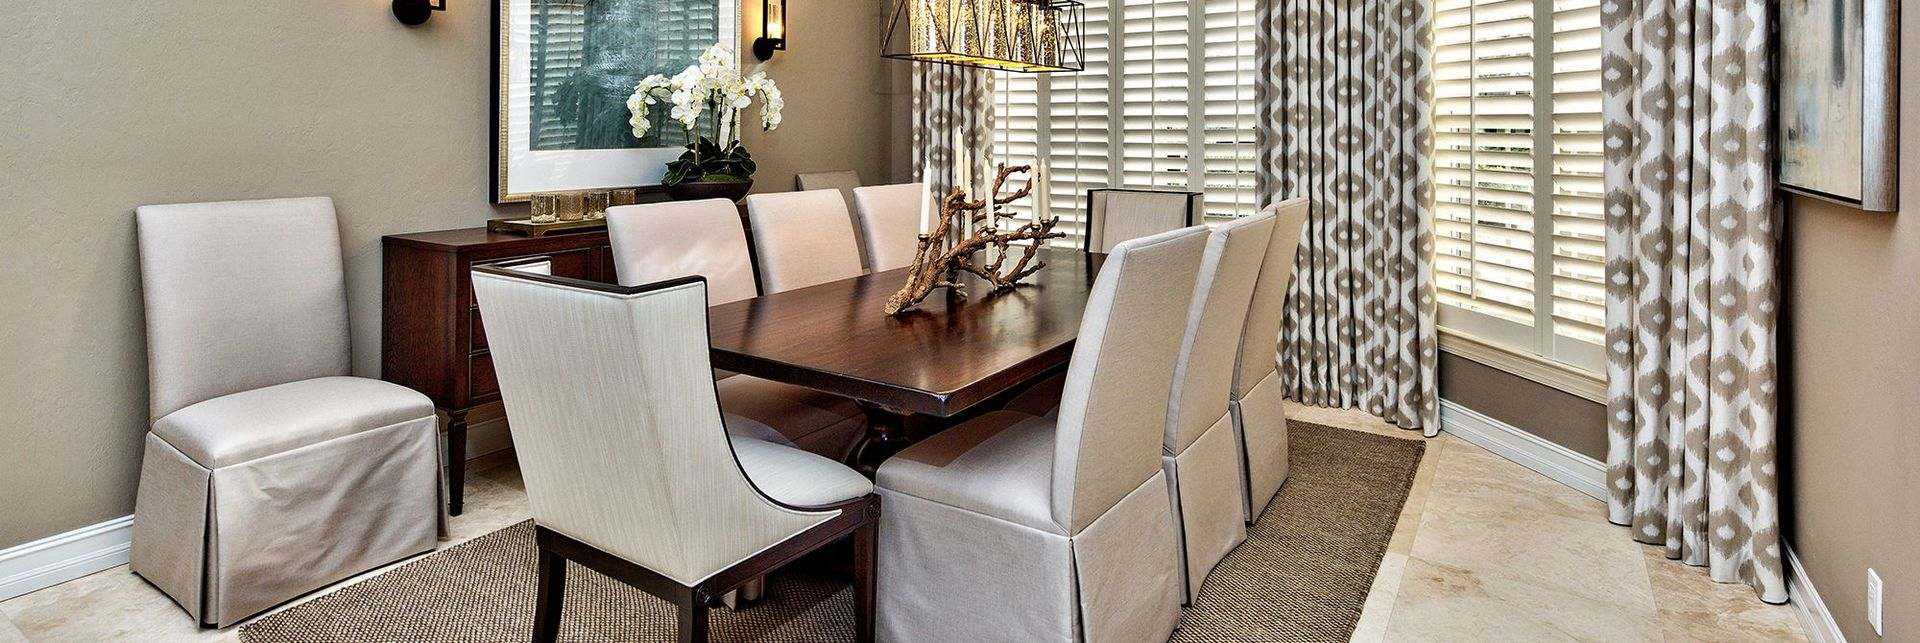 Naples Home Remodeling